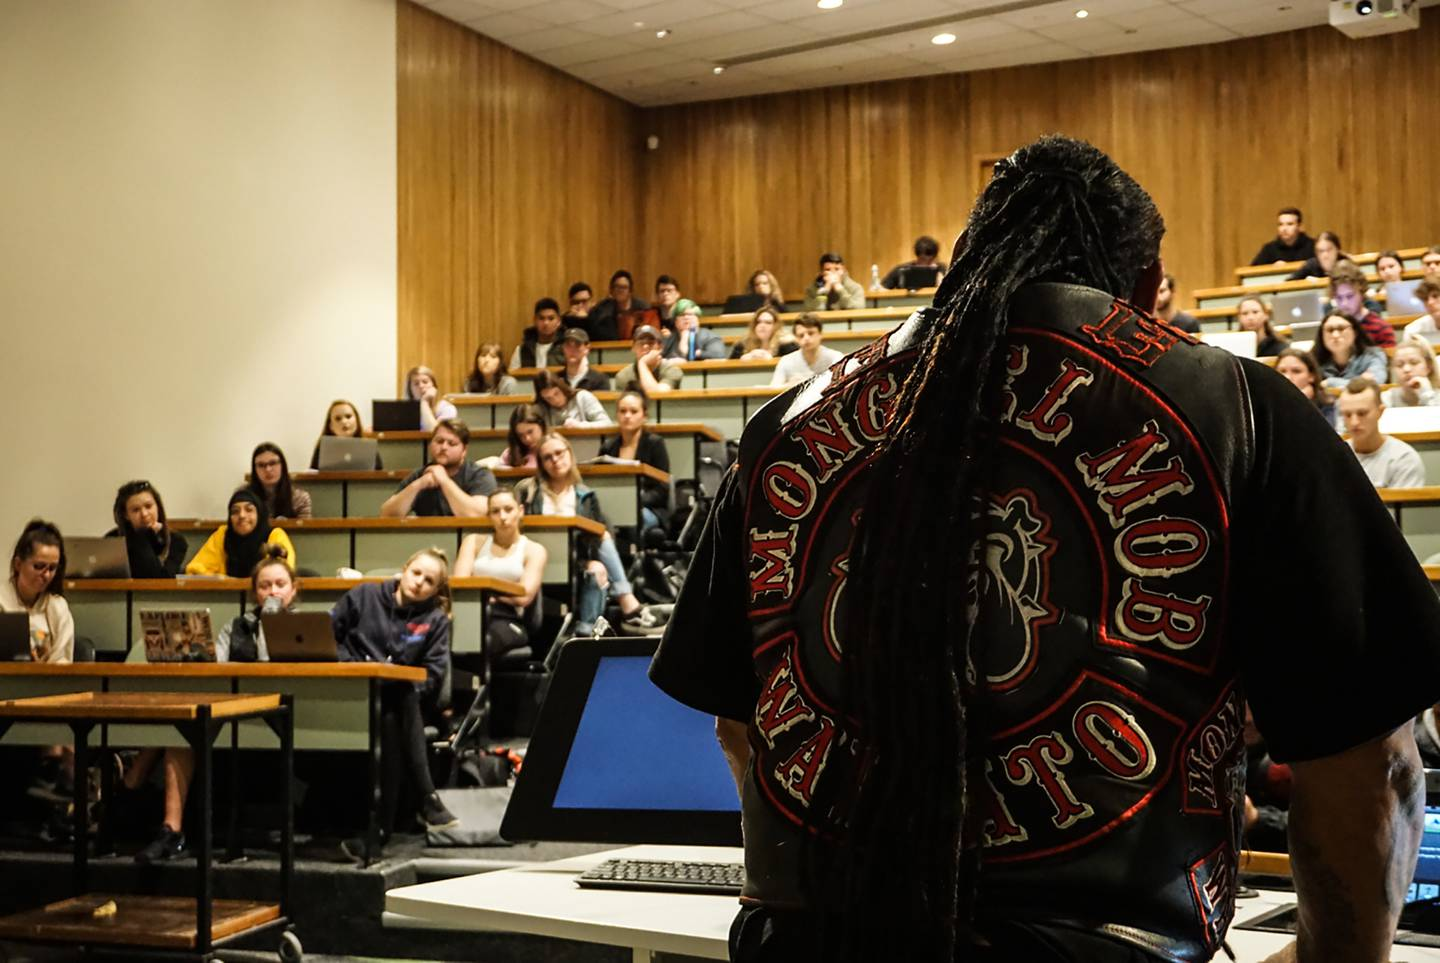 Sonny Fatu of the Hamilton Mongrel Mob chapter talks to Canterbury University criminal justice students on the university campus. Photo / Katie Harris